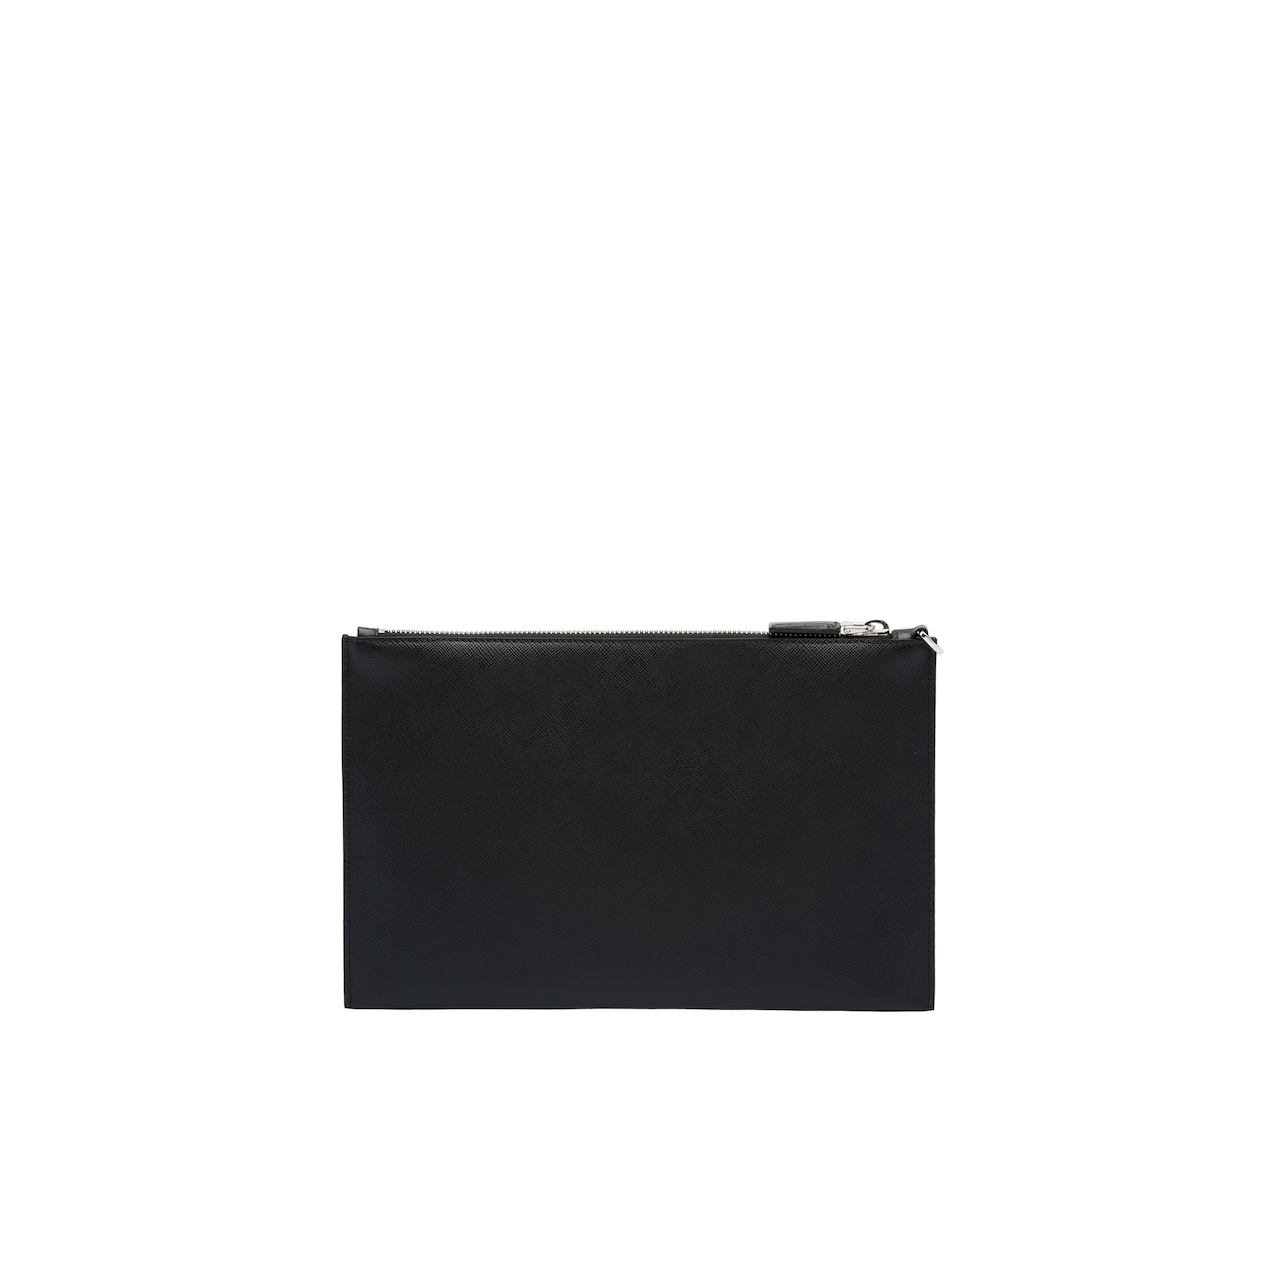 Saffiano leather pouch 5